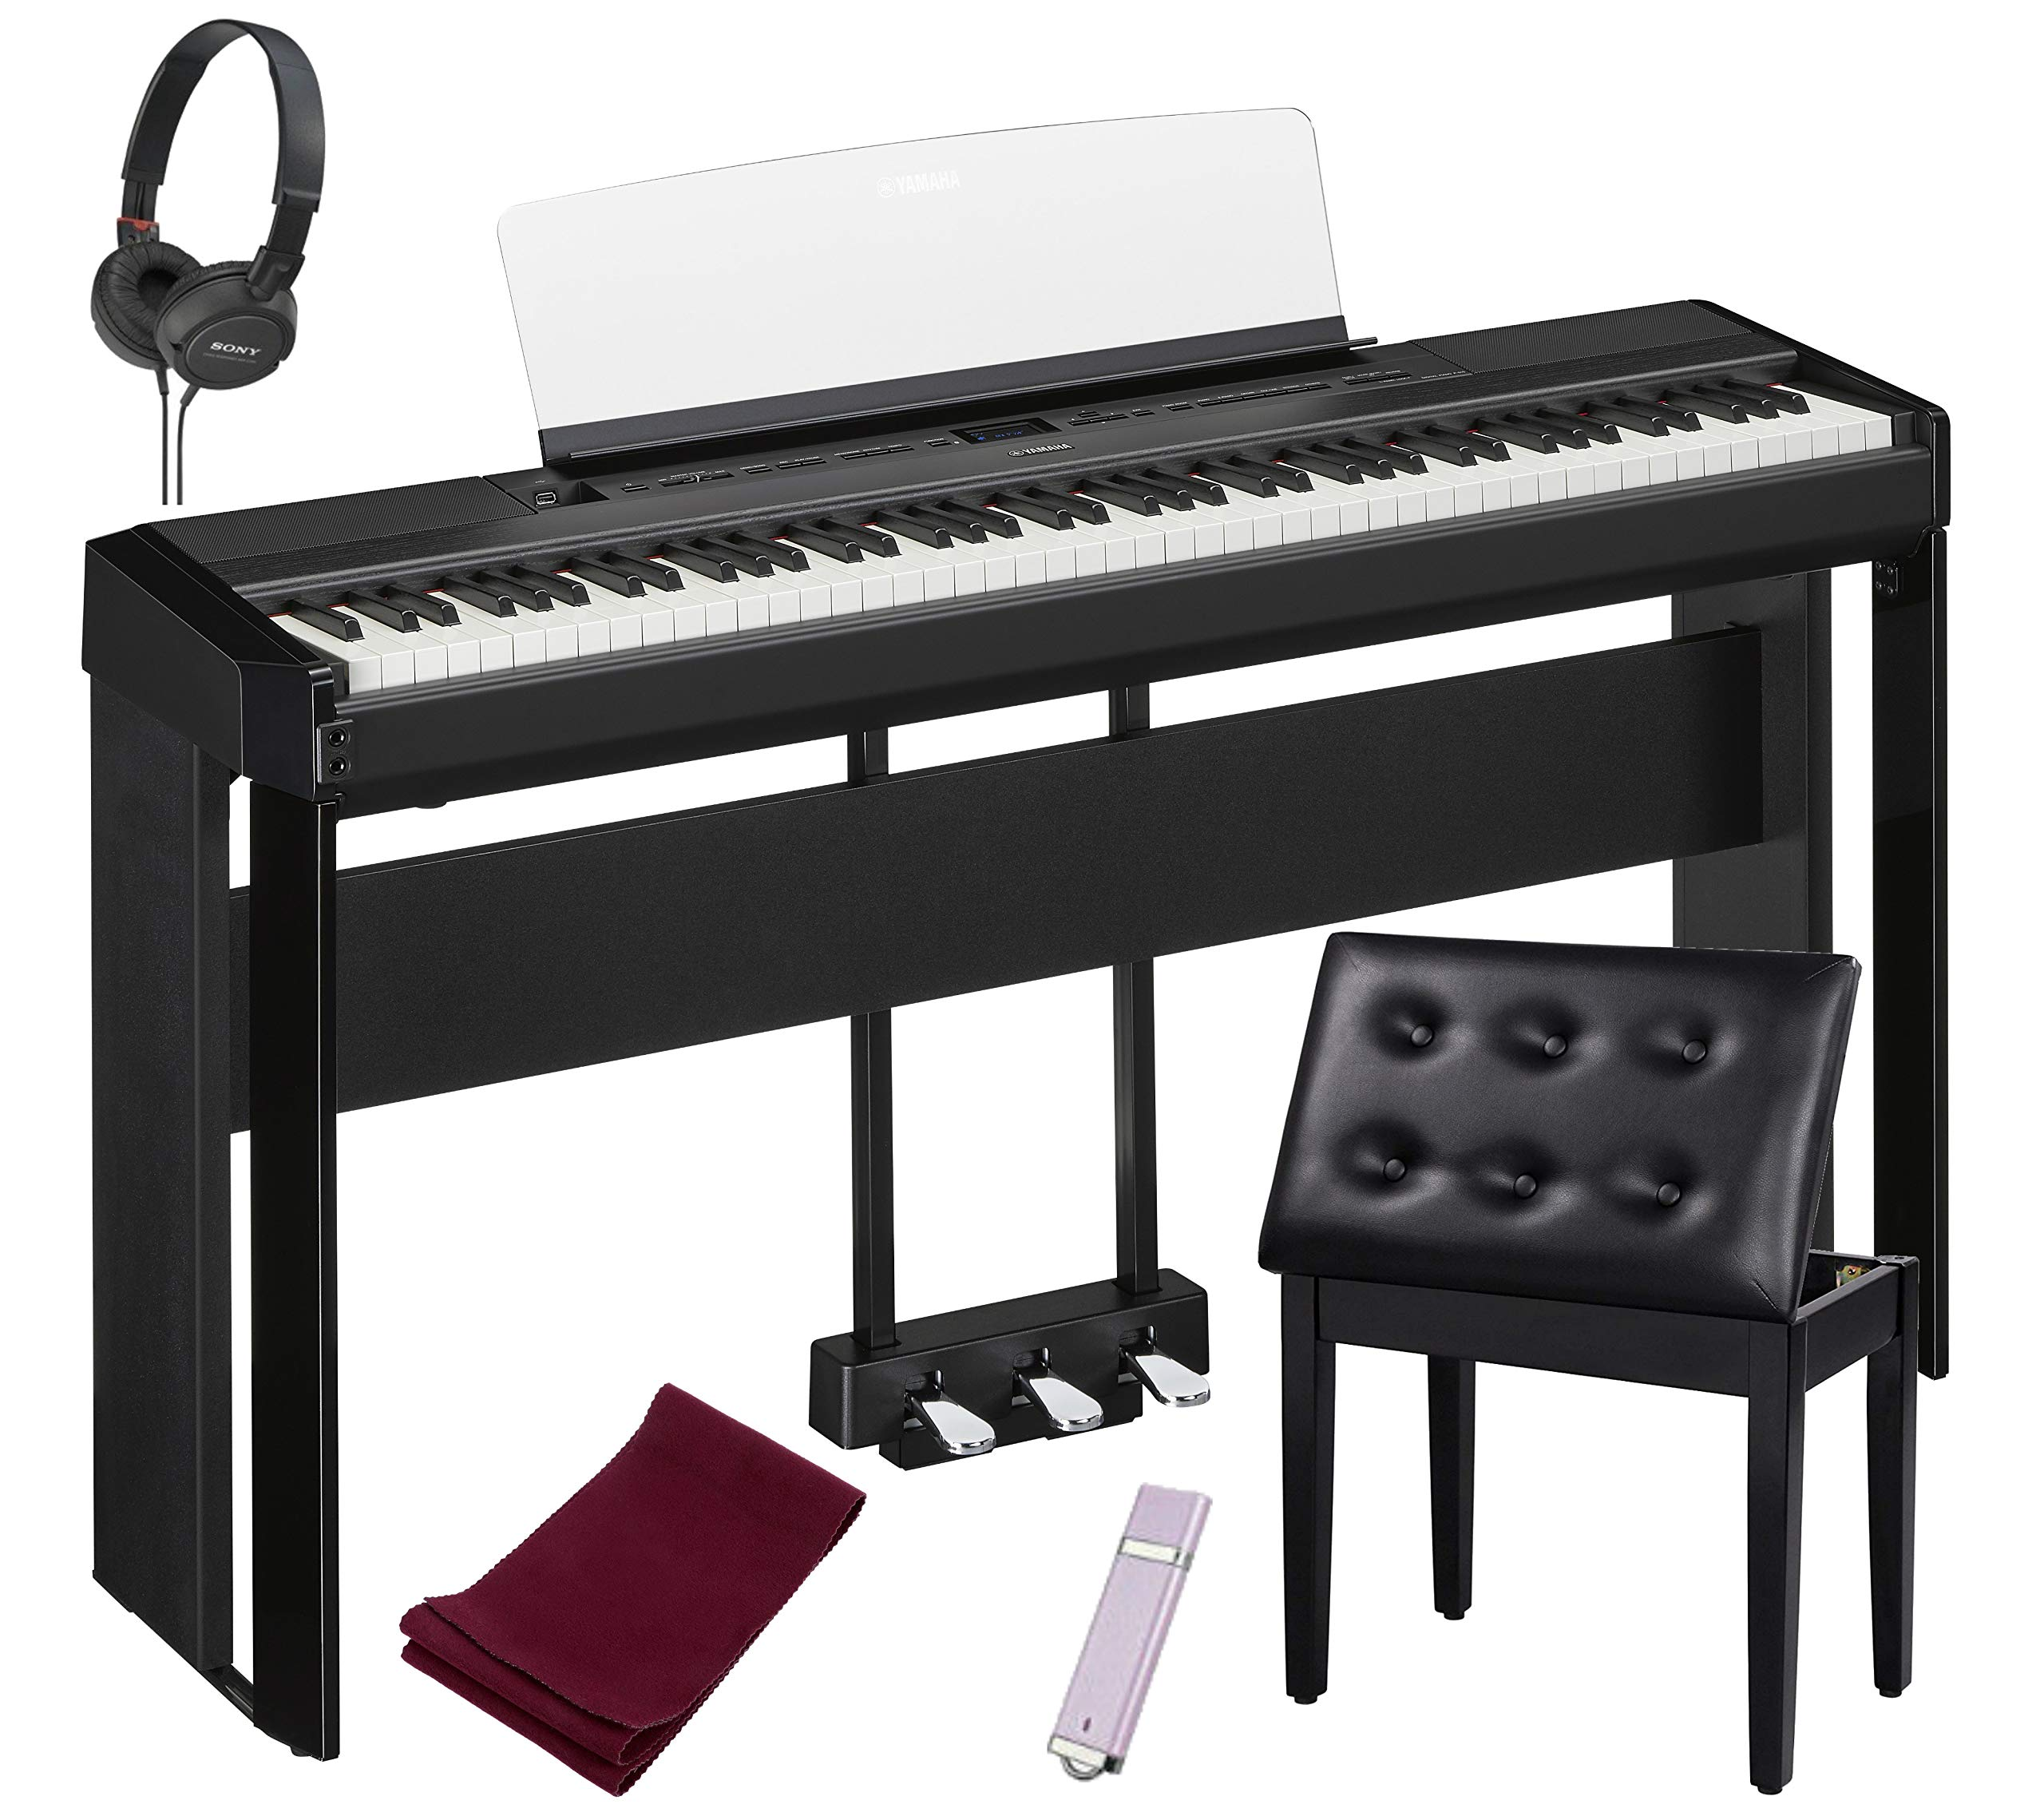 Yamaha P515B 88-Key Digital Piano Black bundled with the Yamaha L515 Piano Stand, the Yamaha LP1B 3-Pedal Unit, Padded Piano Bench, Dust Cover, Stereo Headphones, and USB Drive by Yamaha-Genesis